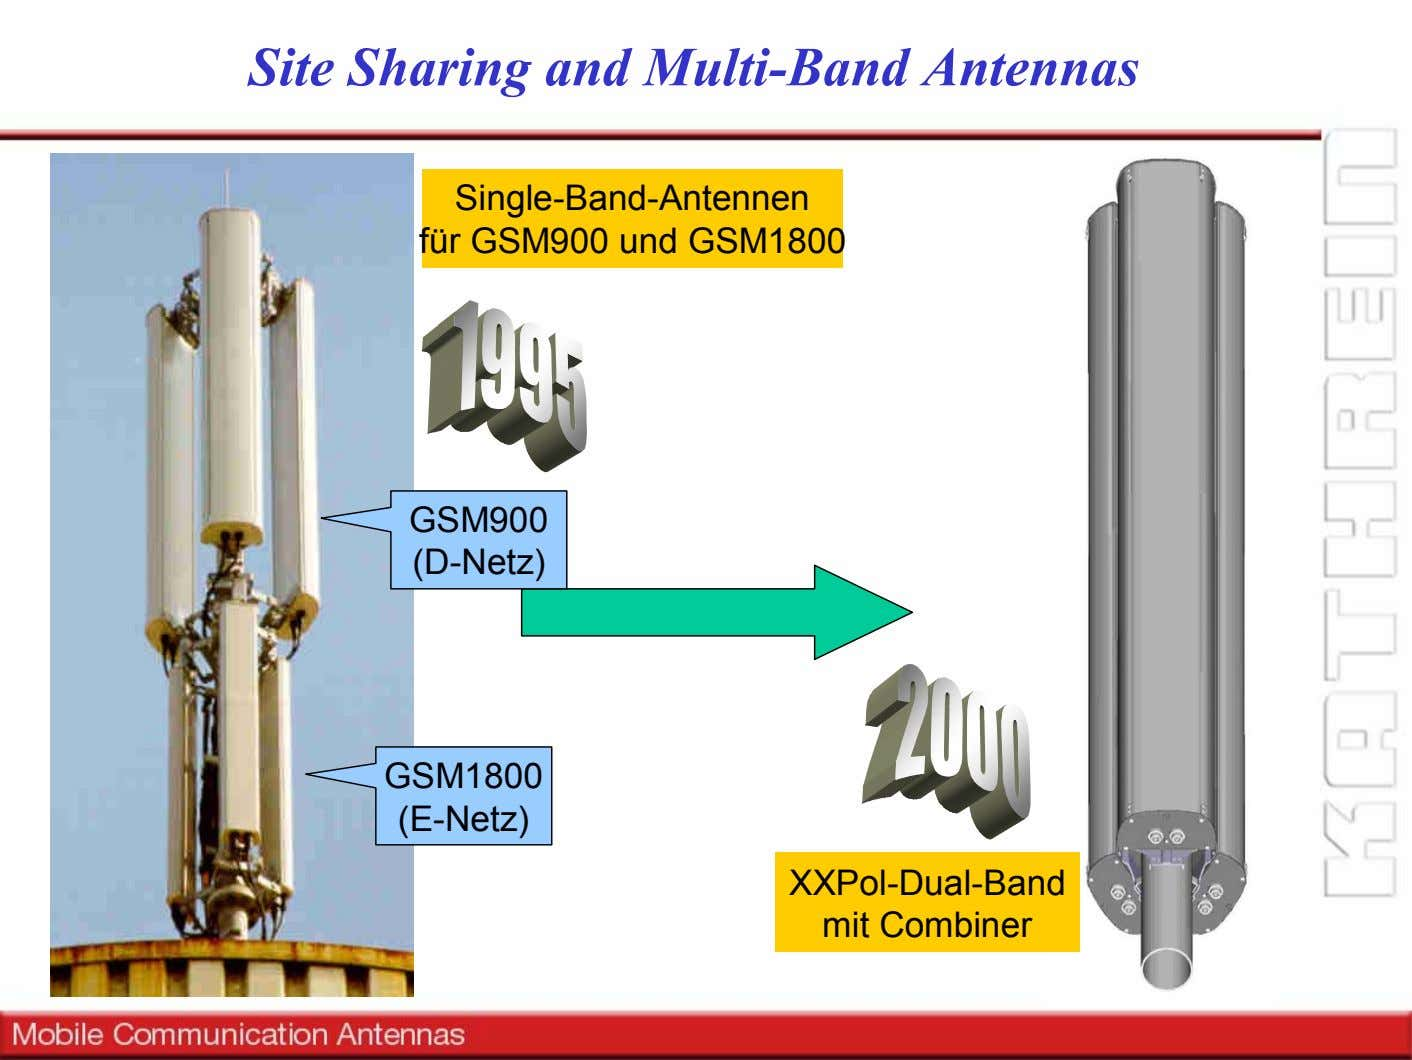 Site Sharing and Multi-Band Antennas Single-Band-Antennen für GSM900 und GSM1800 GSM900 (D-Netz) GSM1800 (E-Netz)